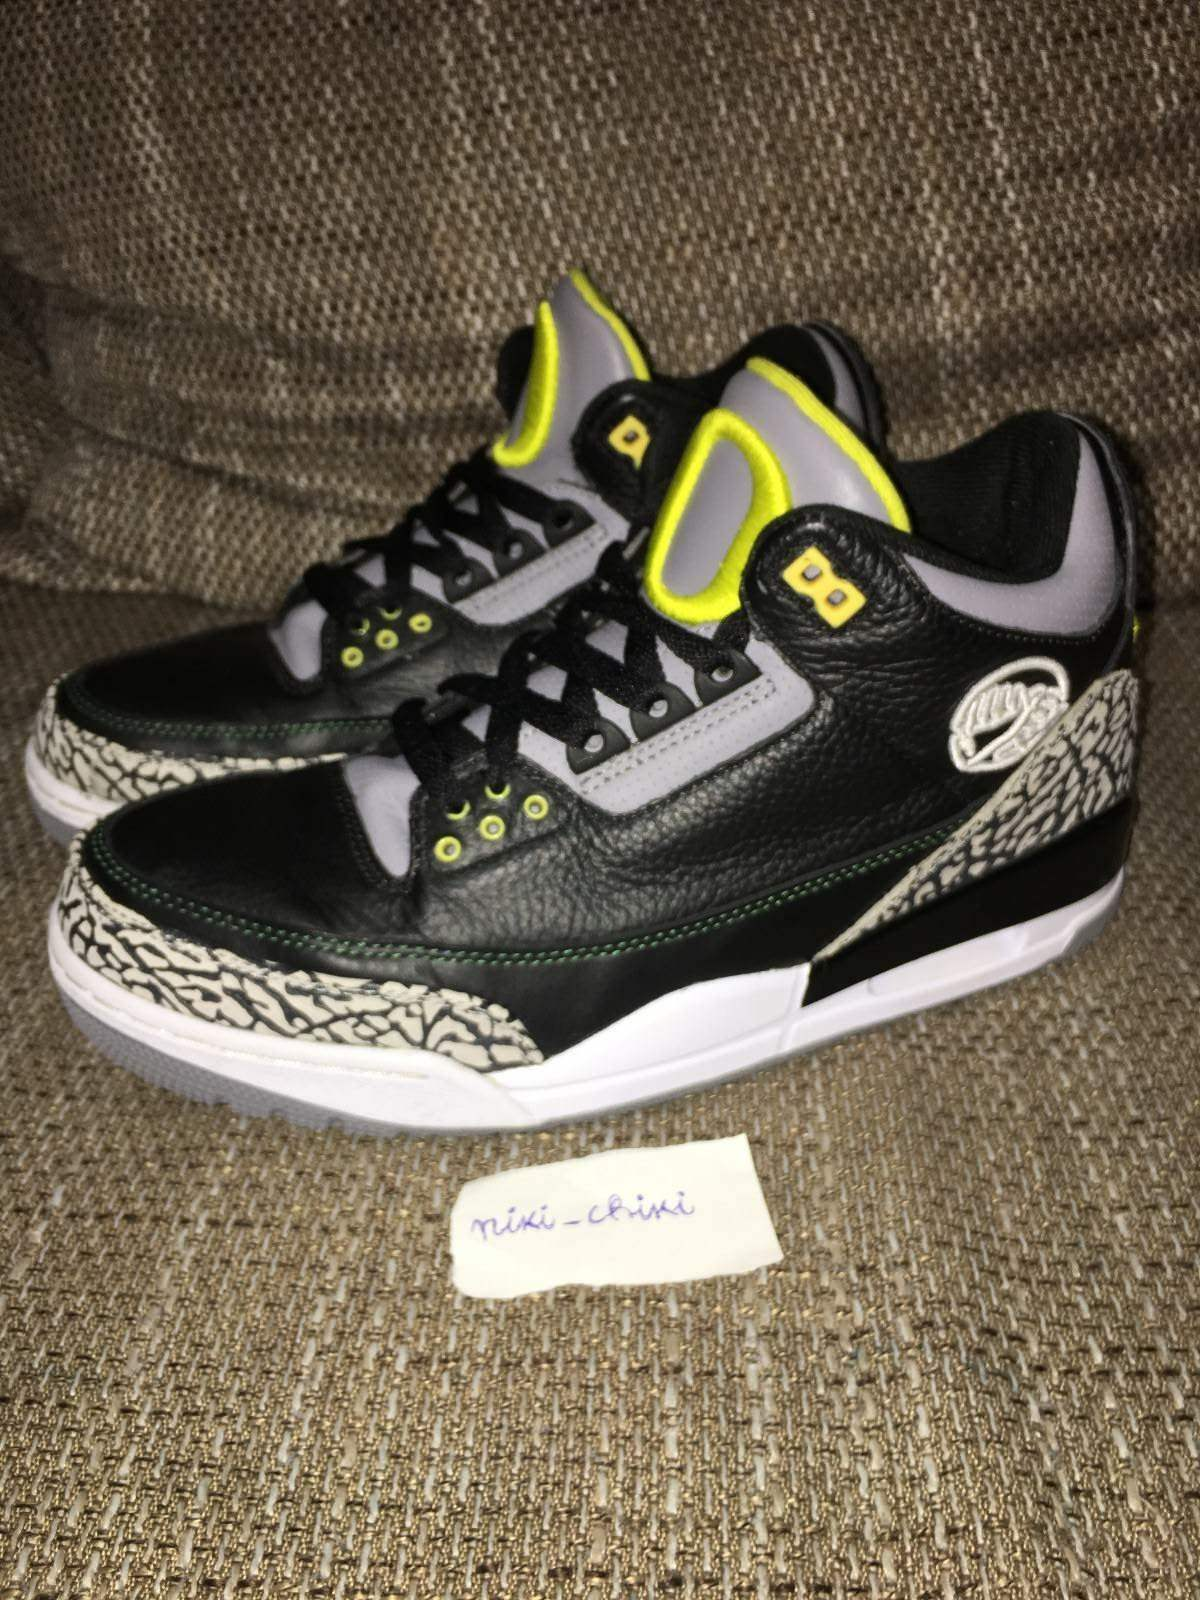 Nike Air Jordan 3 III Retro Oregon Ducks Pit Crew US 10.5 Concord Bred Cement 11